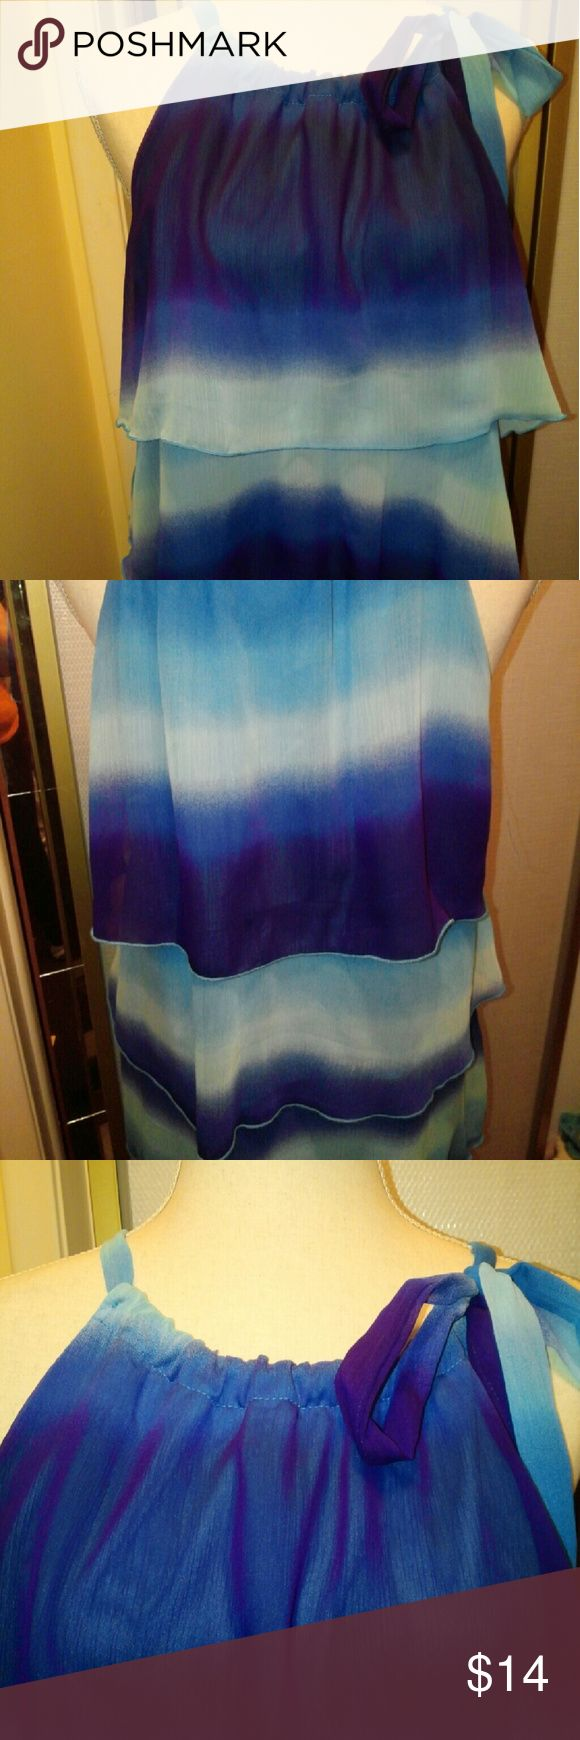 Sleeveless Umbre Tier Top Beautiful Tiered Top in various shades of blue. With one shoulder tie, soft and flirty EUC Lane Bryant Tops